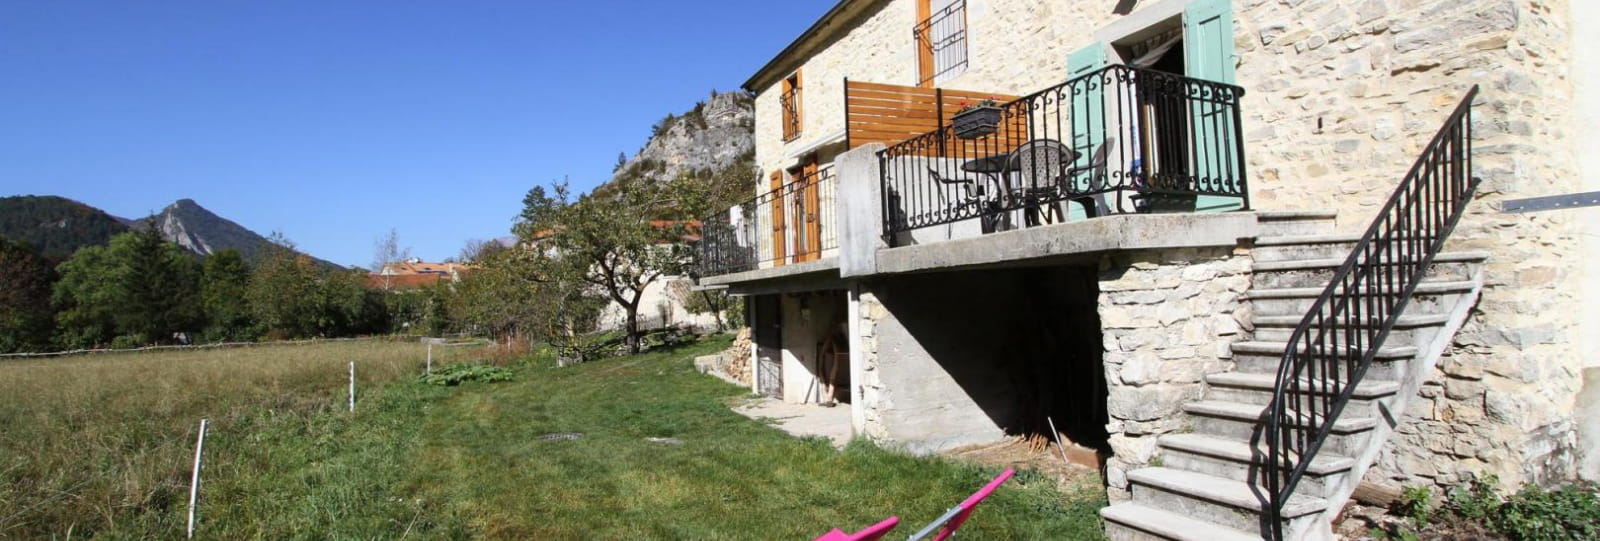 Le Bec d'Oiseau Self Catering Accommodation